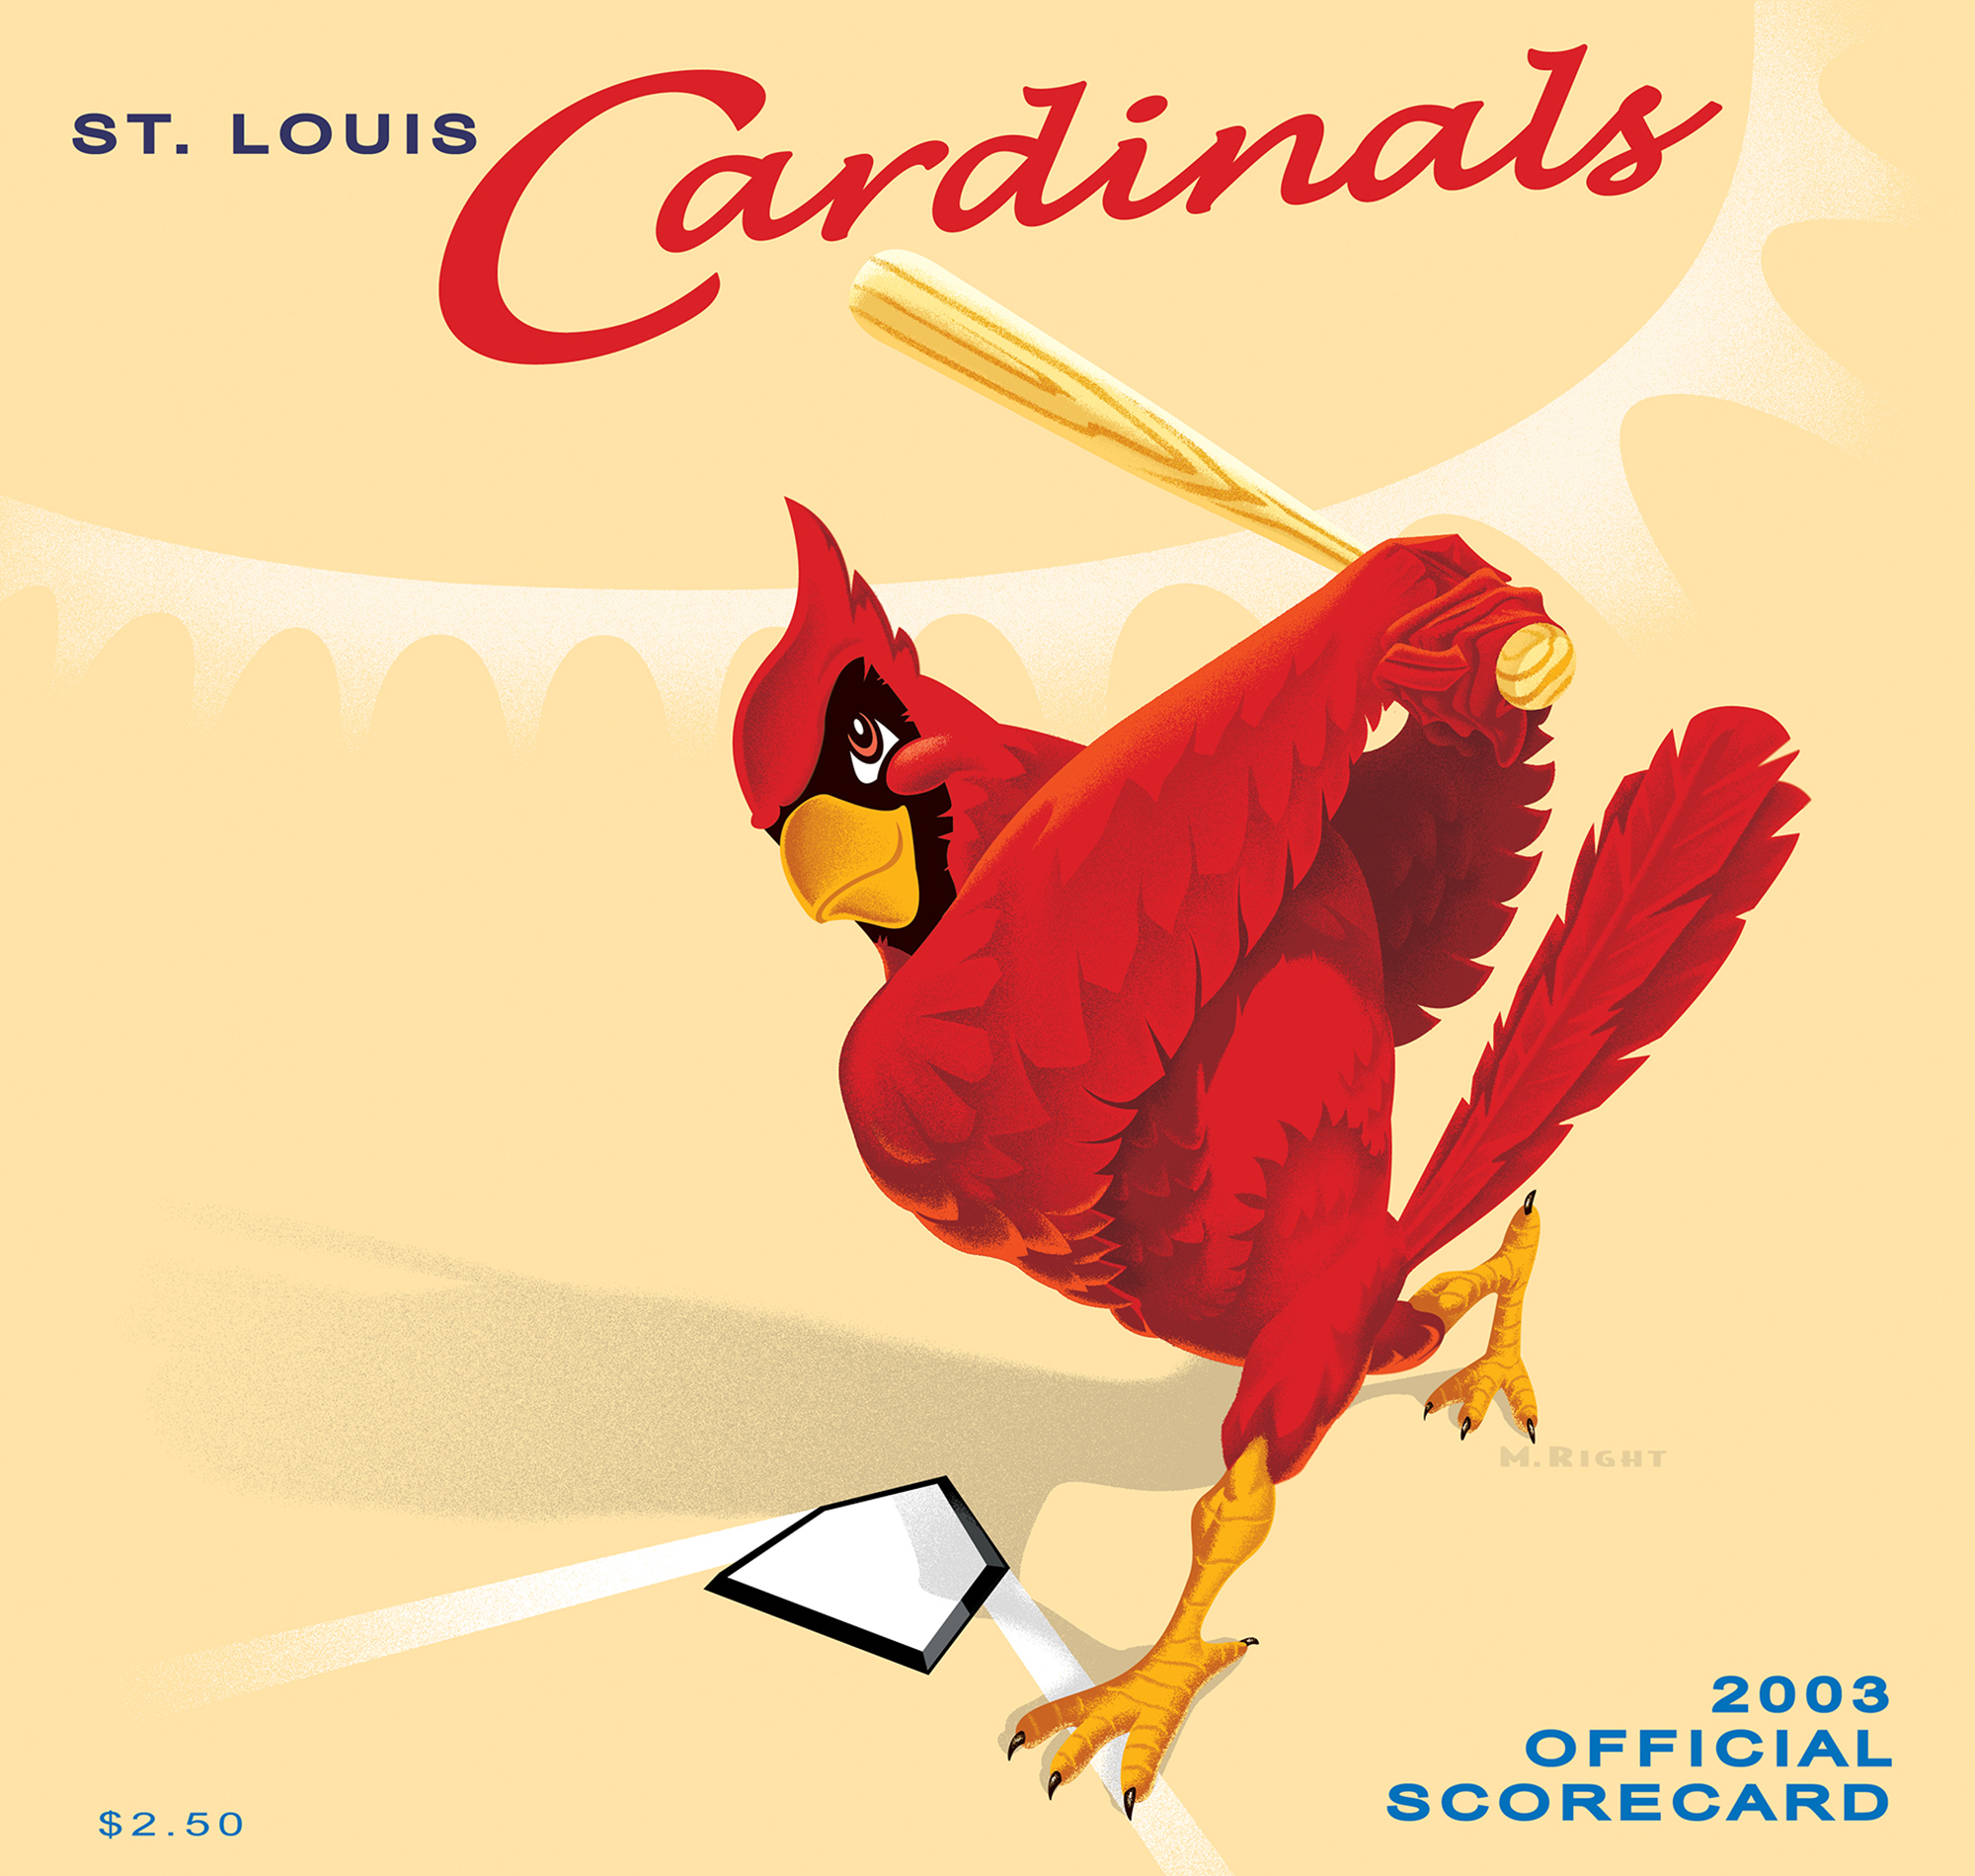 2003 Cardinals Official Scorecard